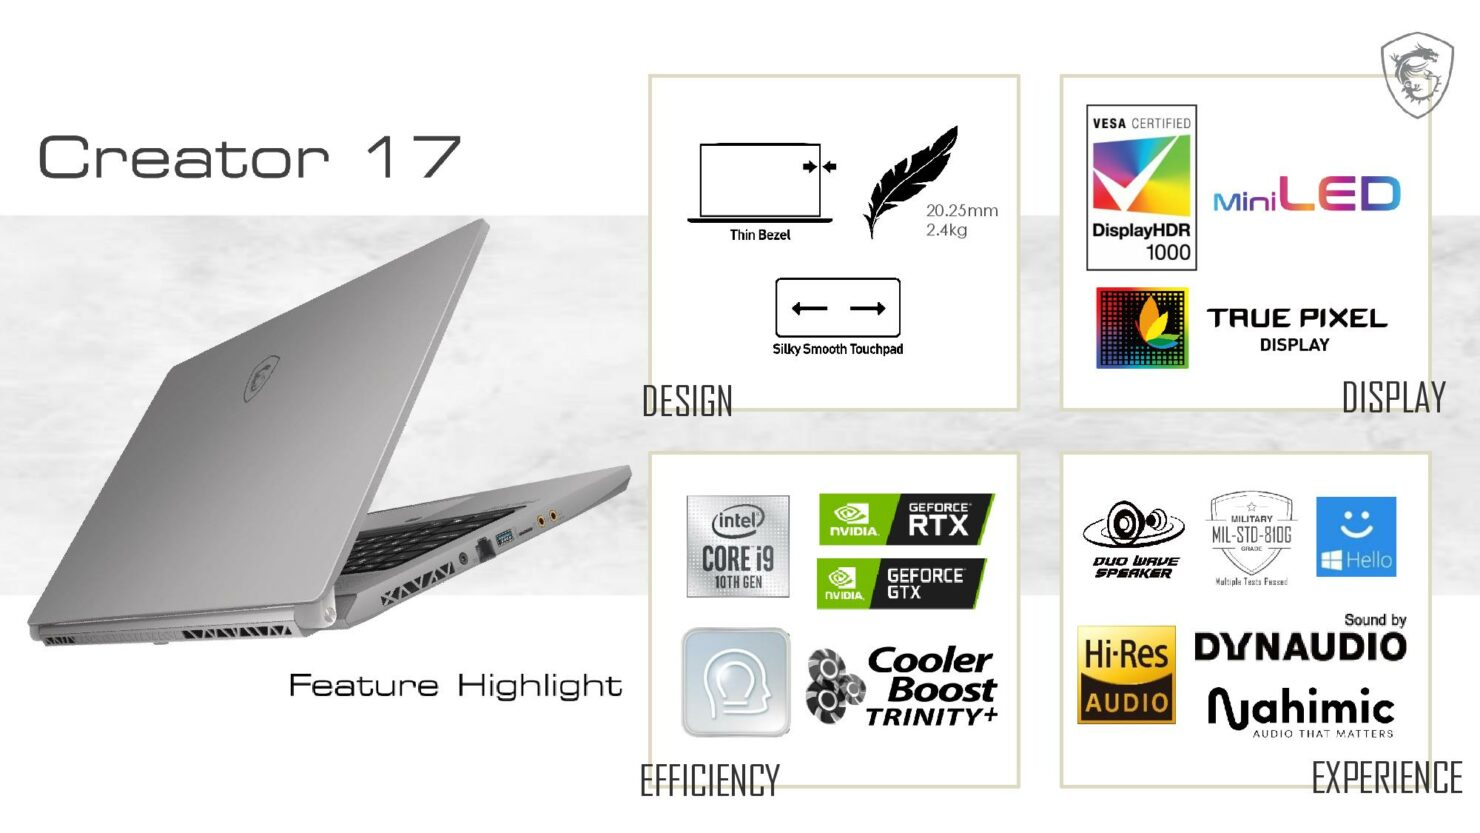 msi-creator-17-product-information-page-032